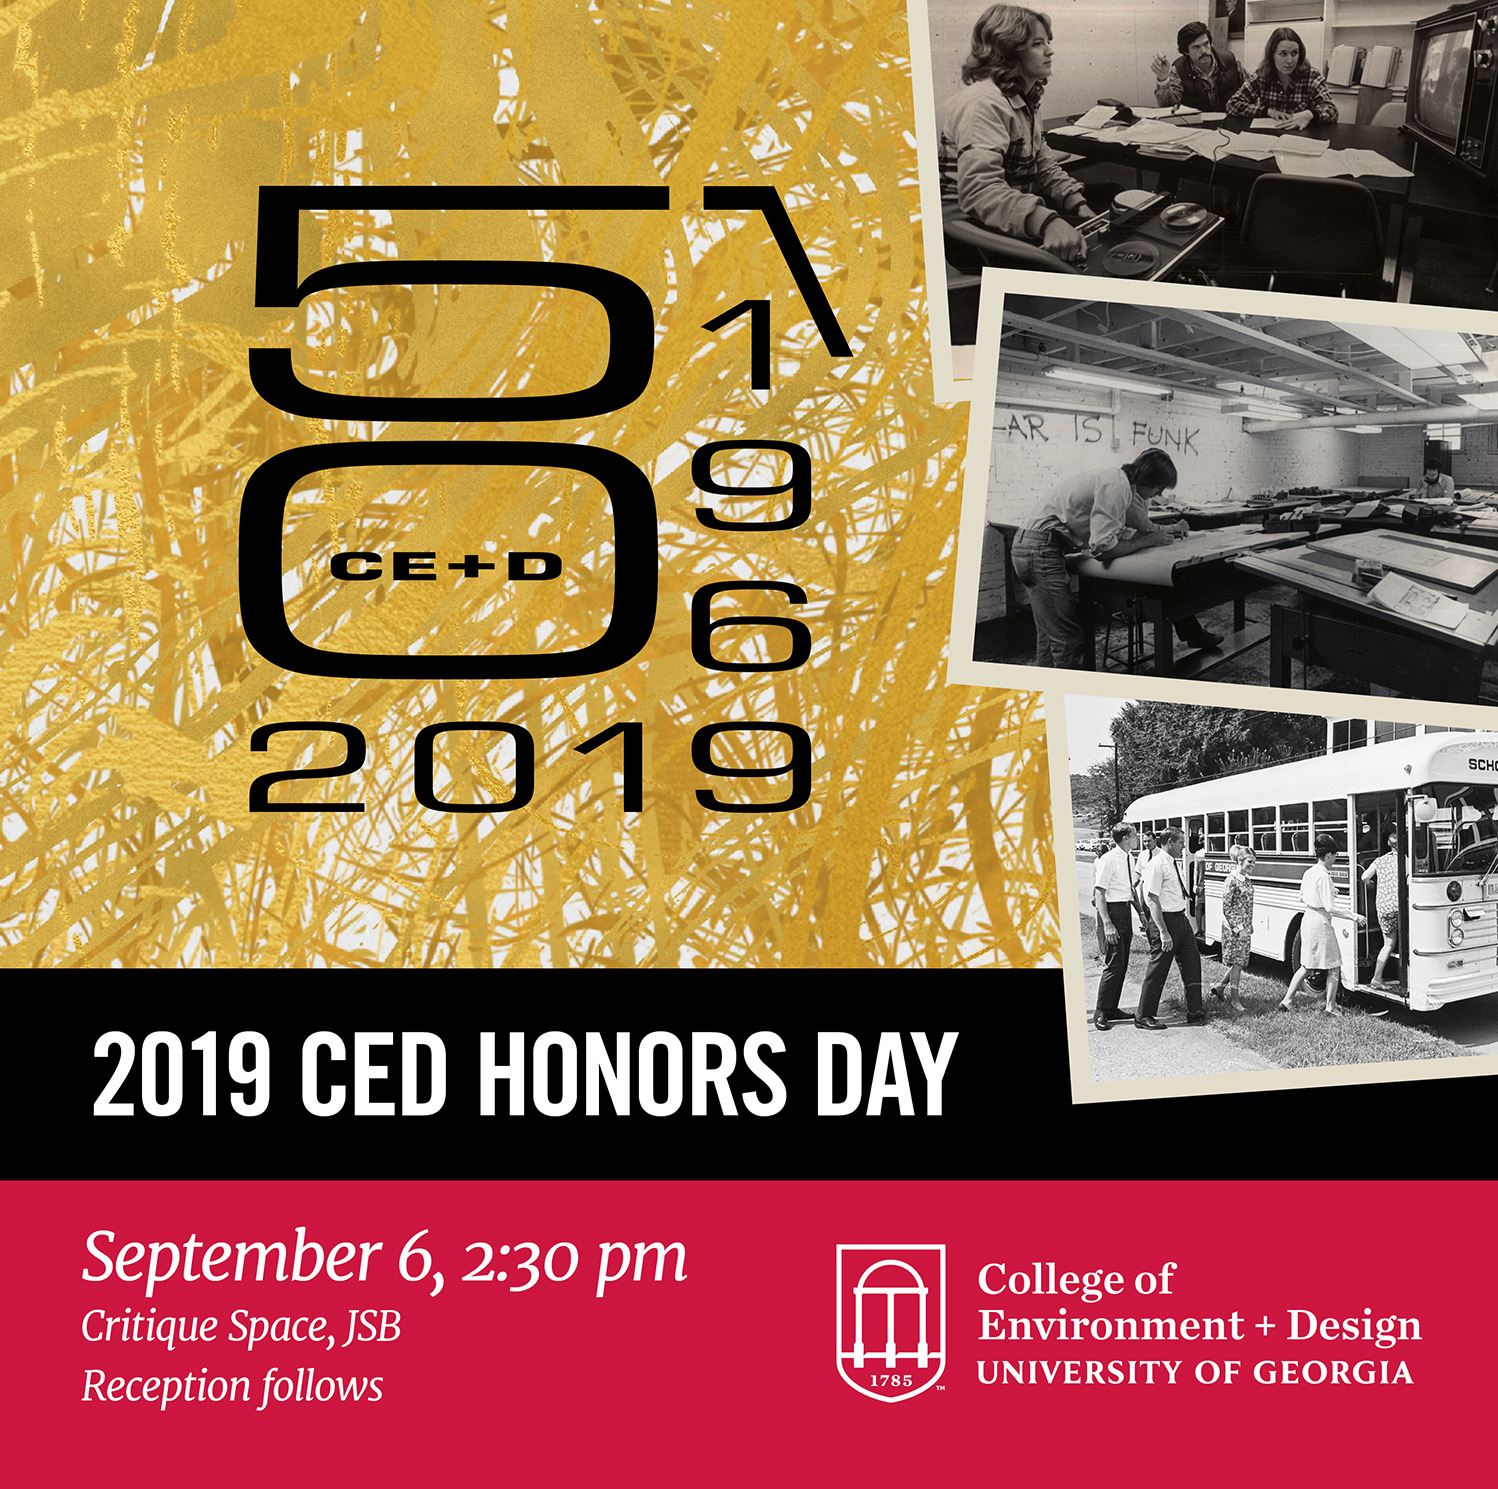 2019 CED Honors Day